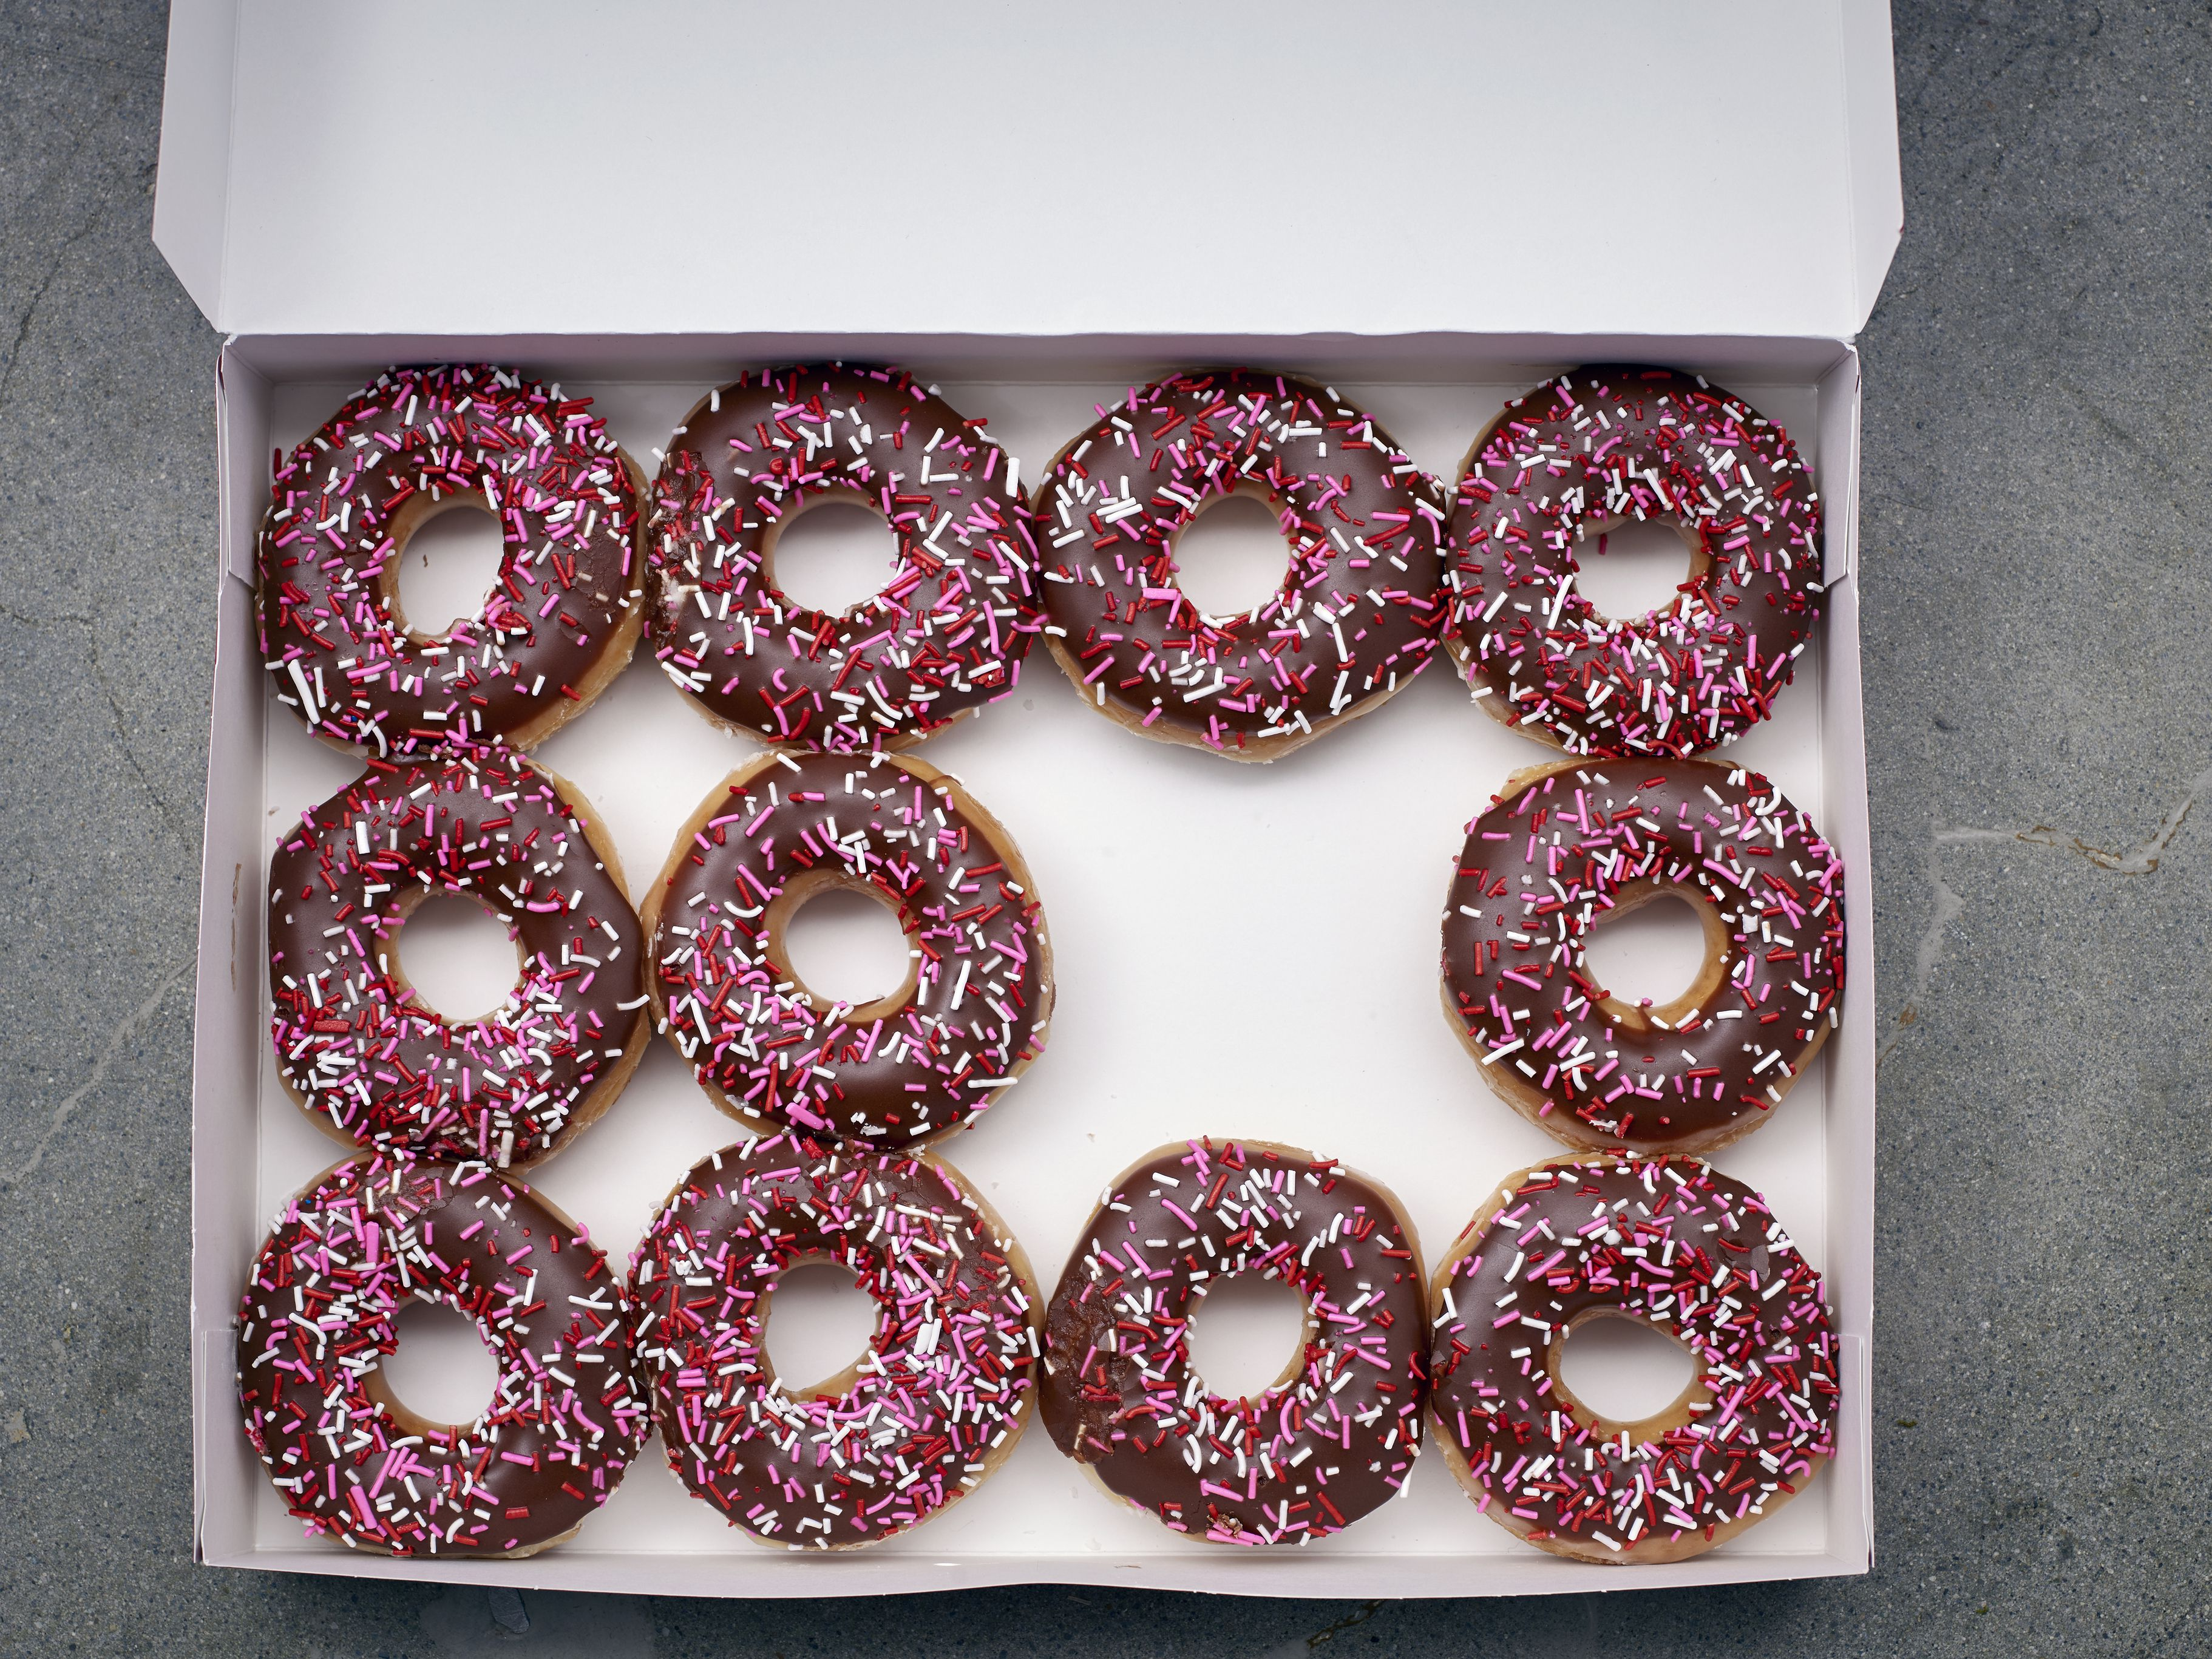 box-of-11-doughnuts-540034987-58e3bb5f3df78c51621ab36b Different Ways To Get In Math on